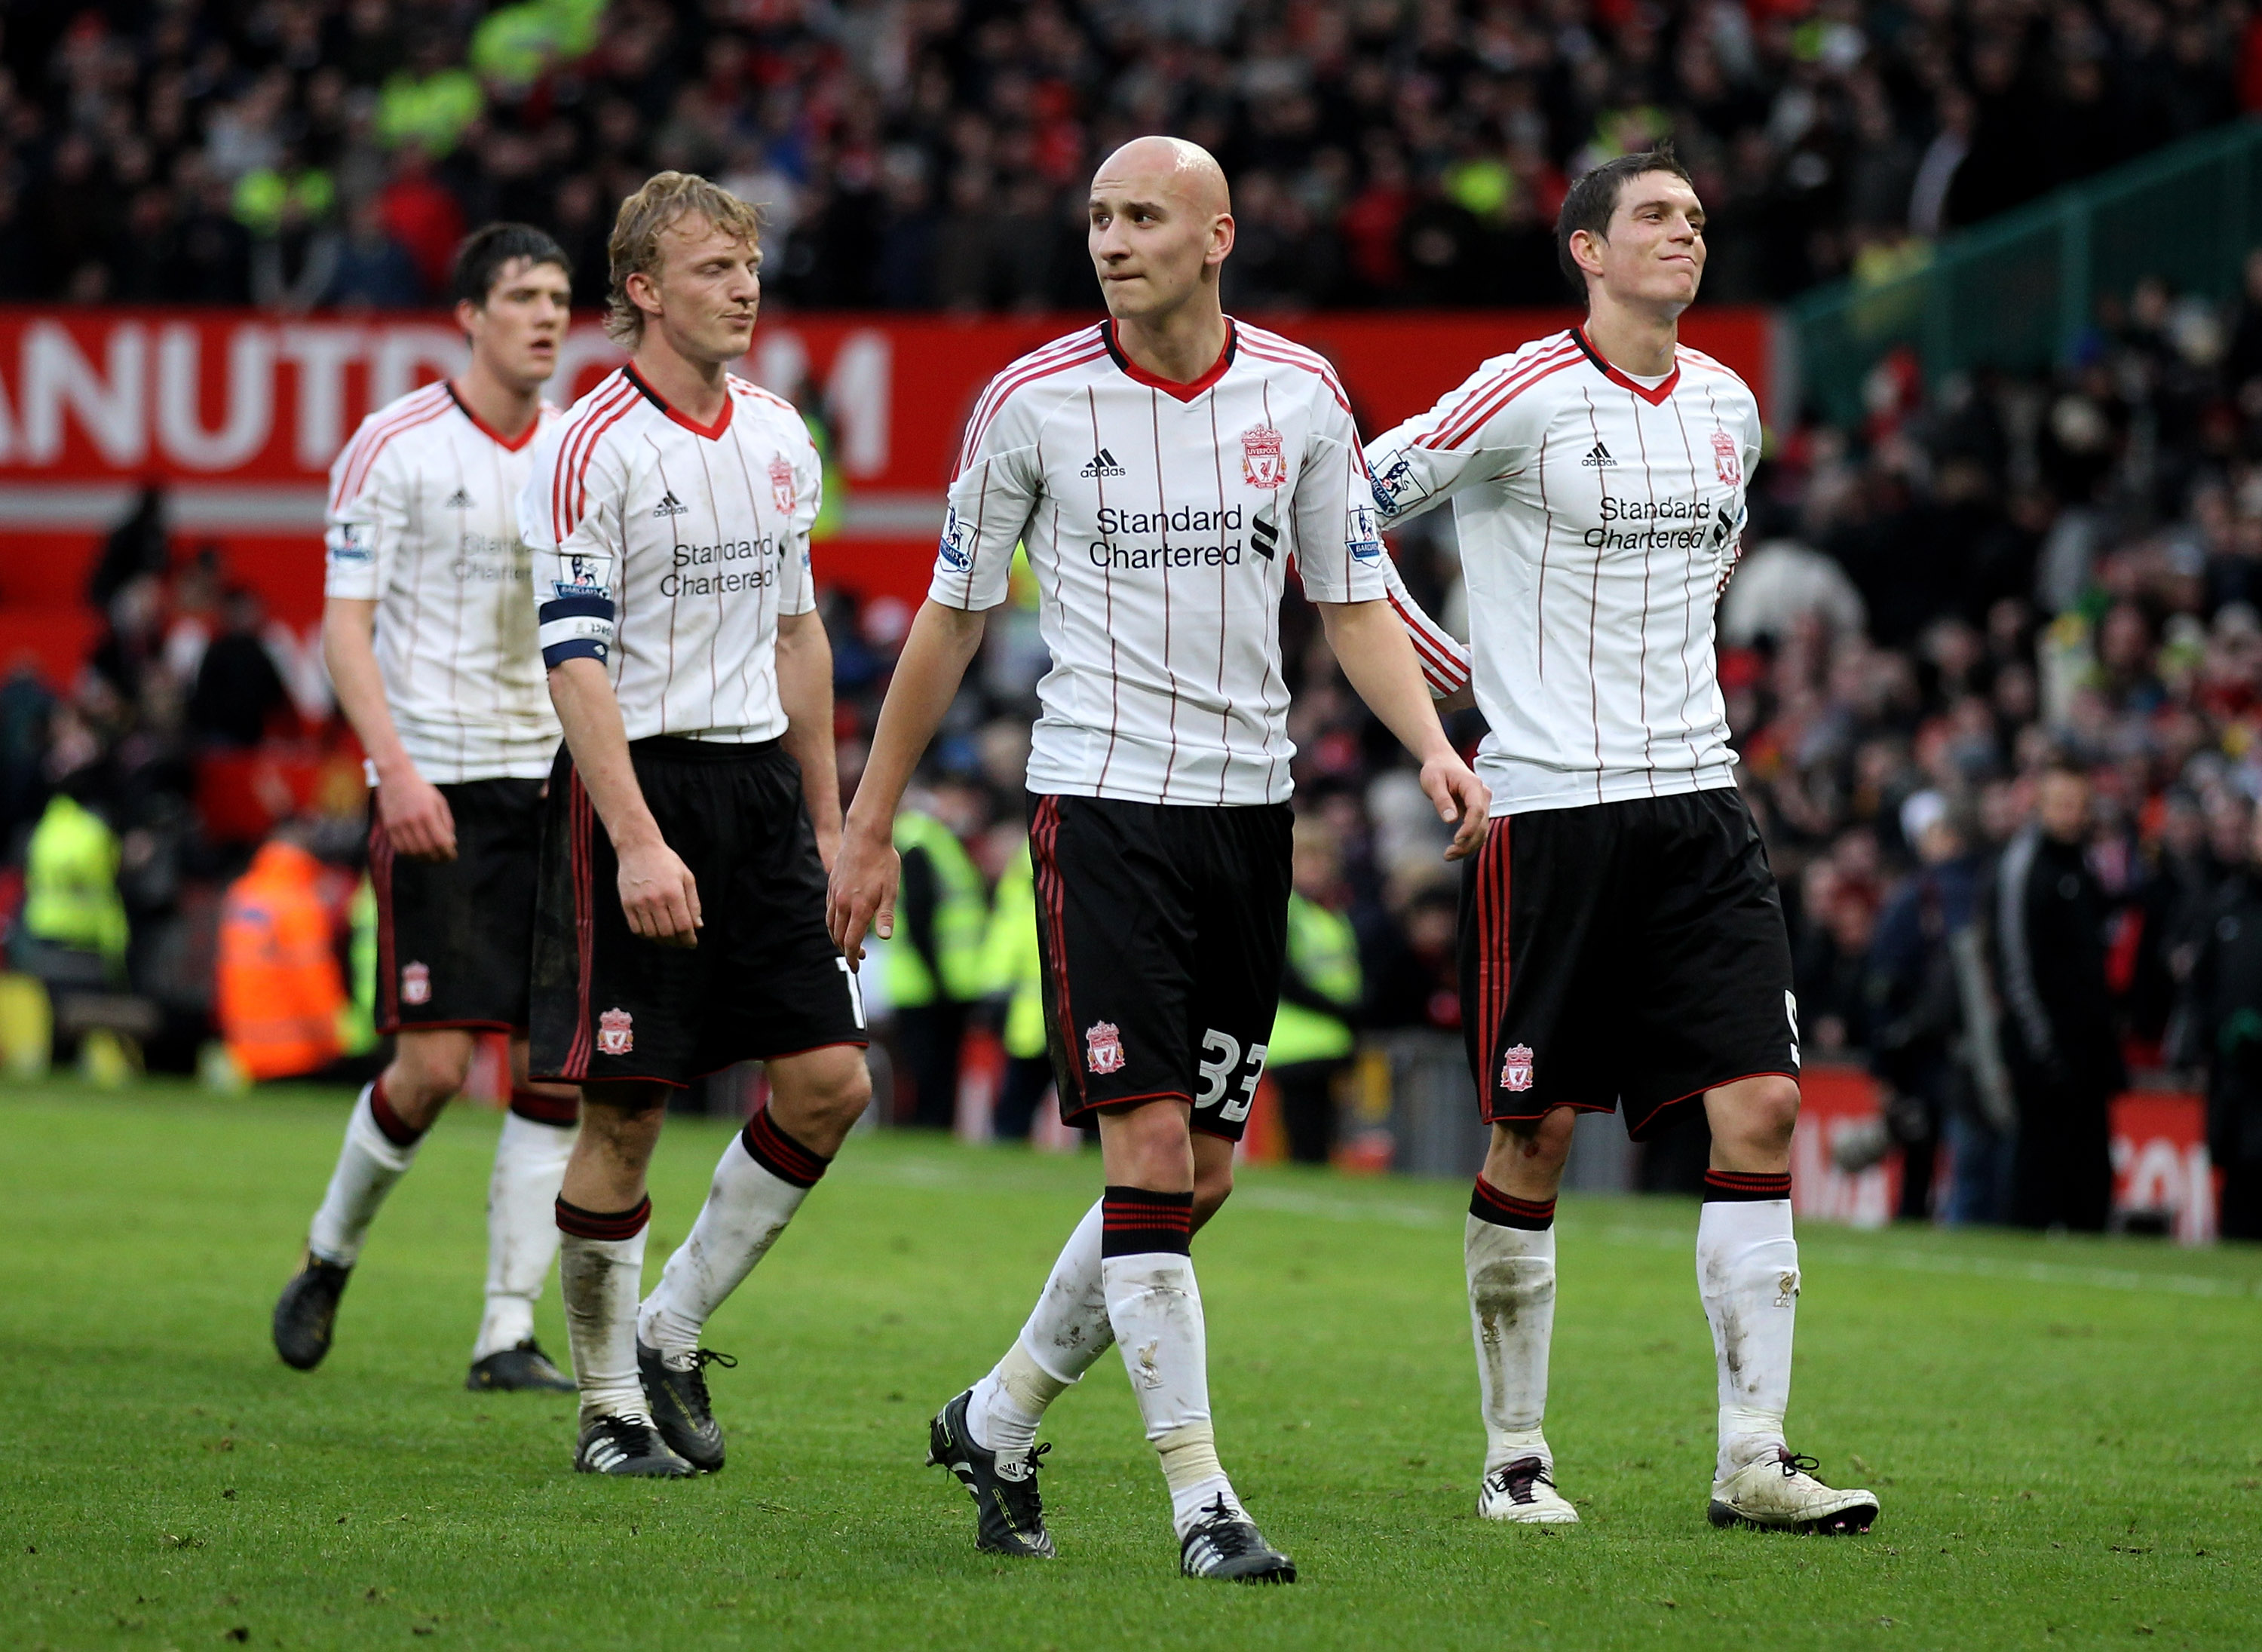 MANCHESTER, ENGLAND - JANUARY 09:   Jonjo Shelvey of Liverpool heads for the dressing room with team mates Martin Kelly (L), Dirk Kuyt and Daniel Agger (R) at the end of the FA Cup sponsored by E.ON 3rd round match between Manchester United and Liverpool